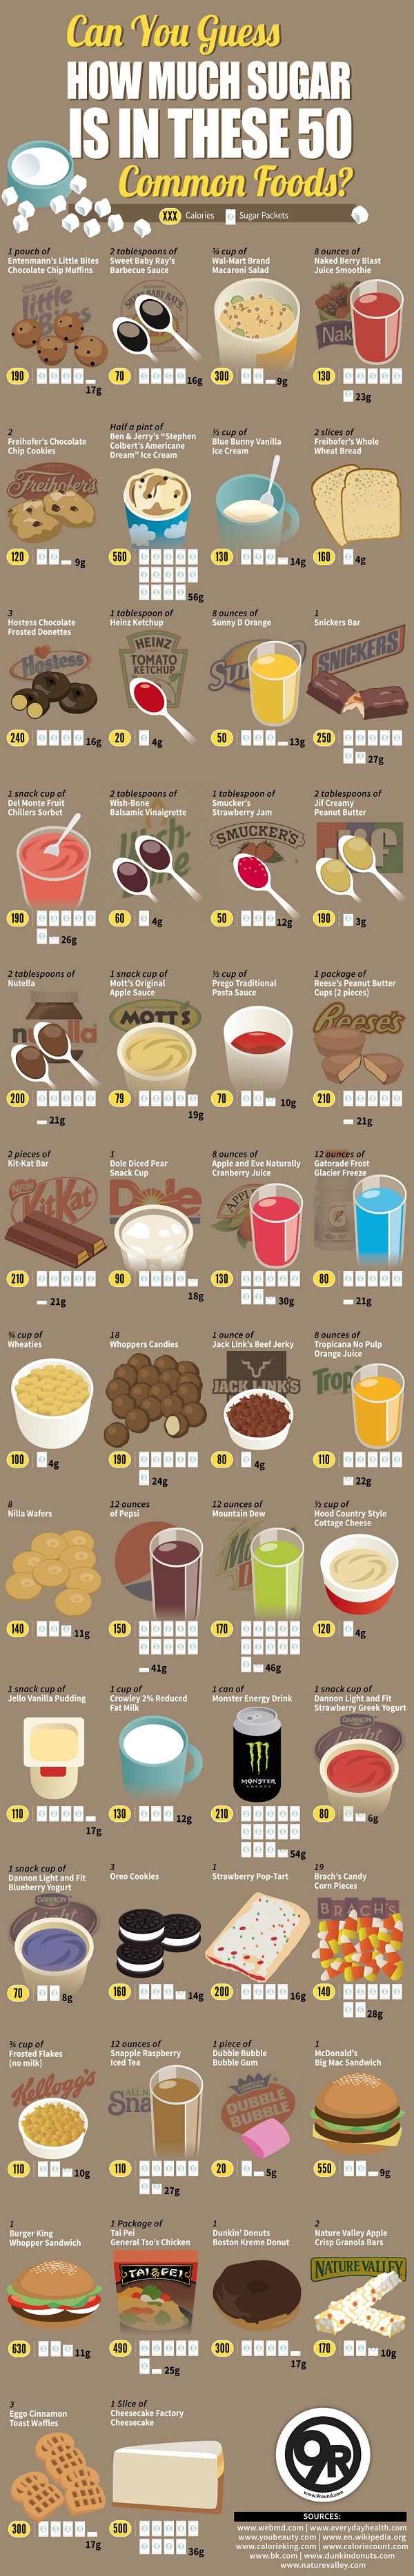 amount of sugars in common foods